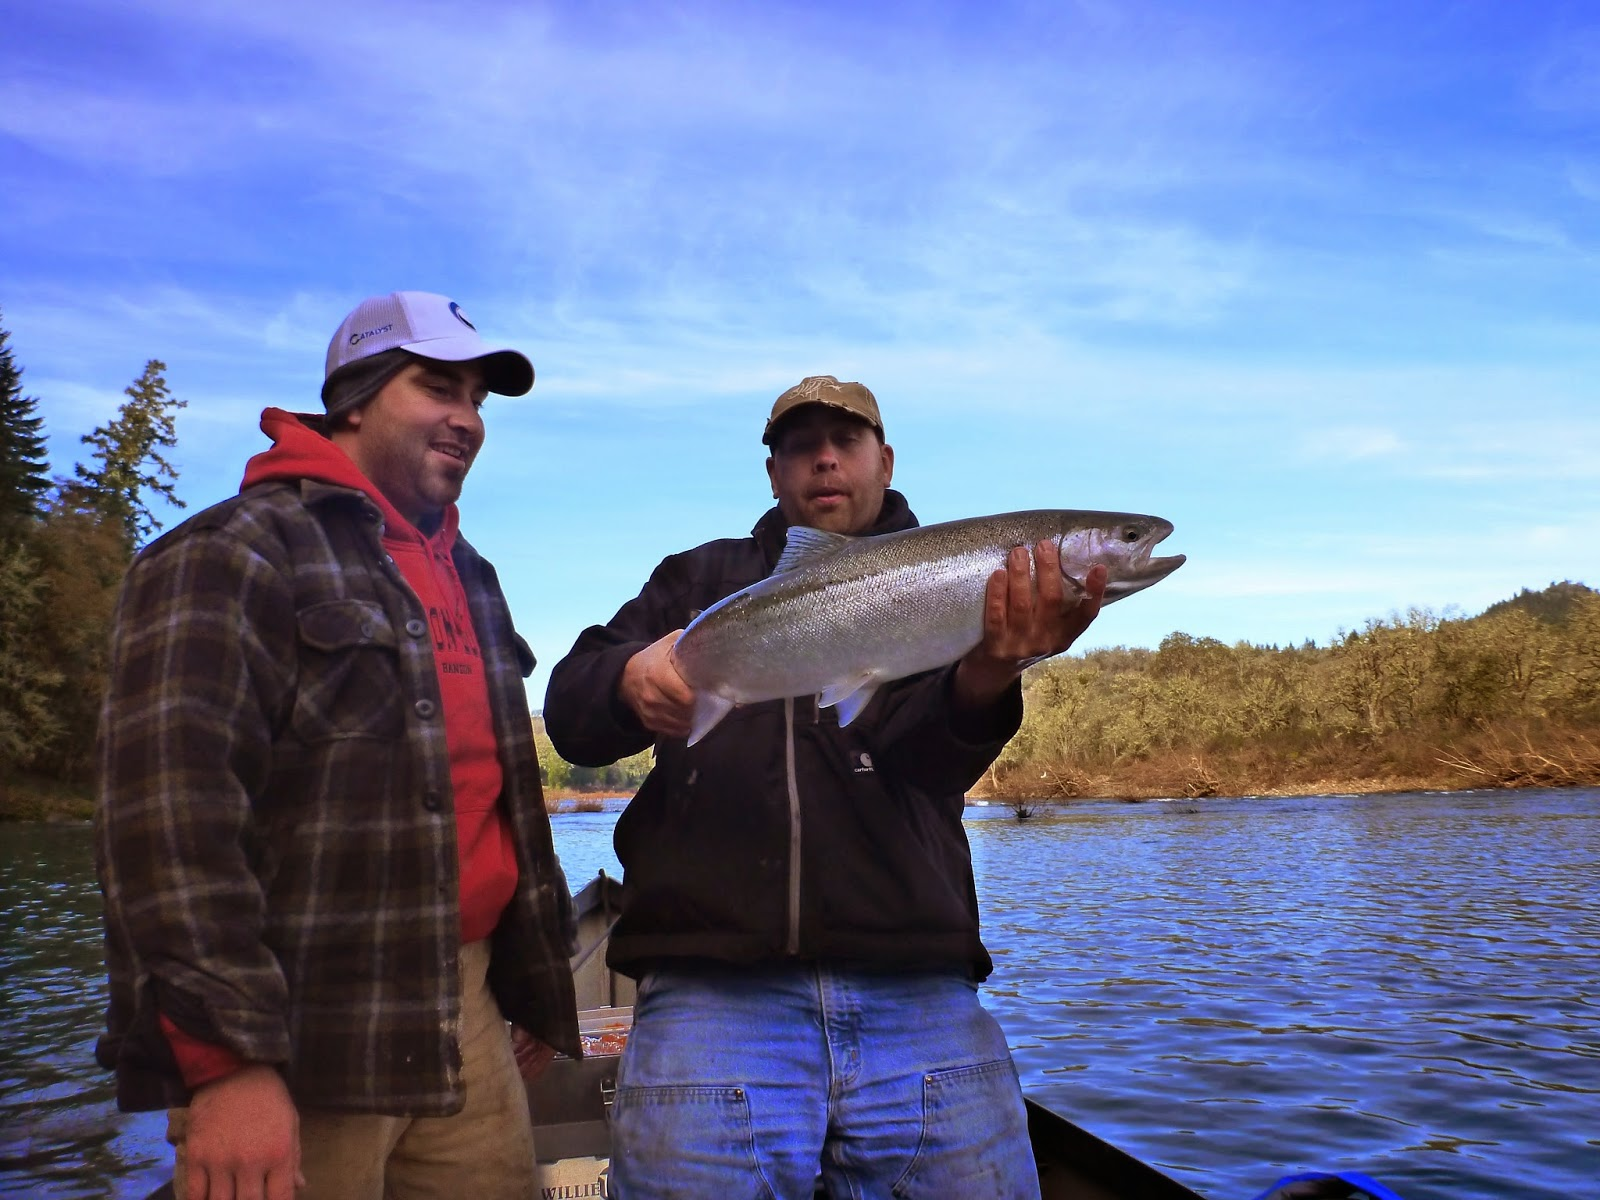 Umpqua River Steelhead Fishing.